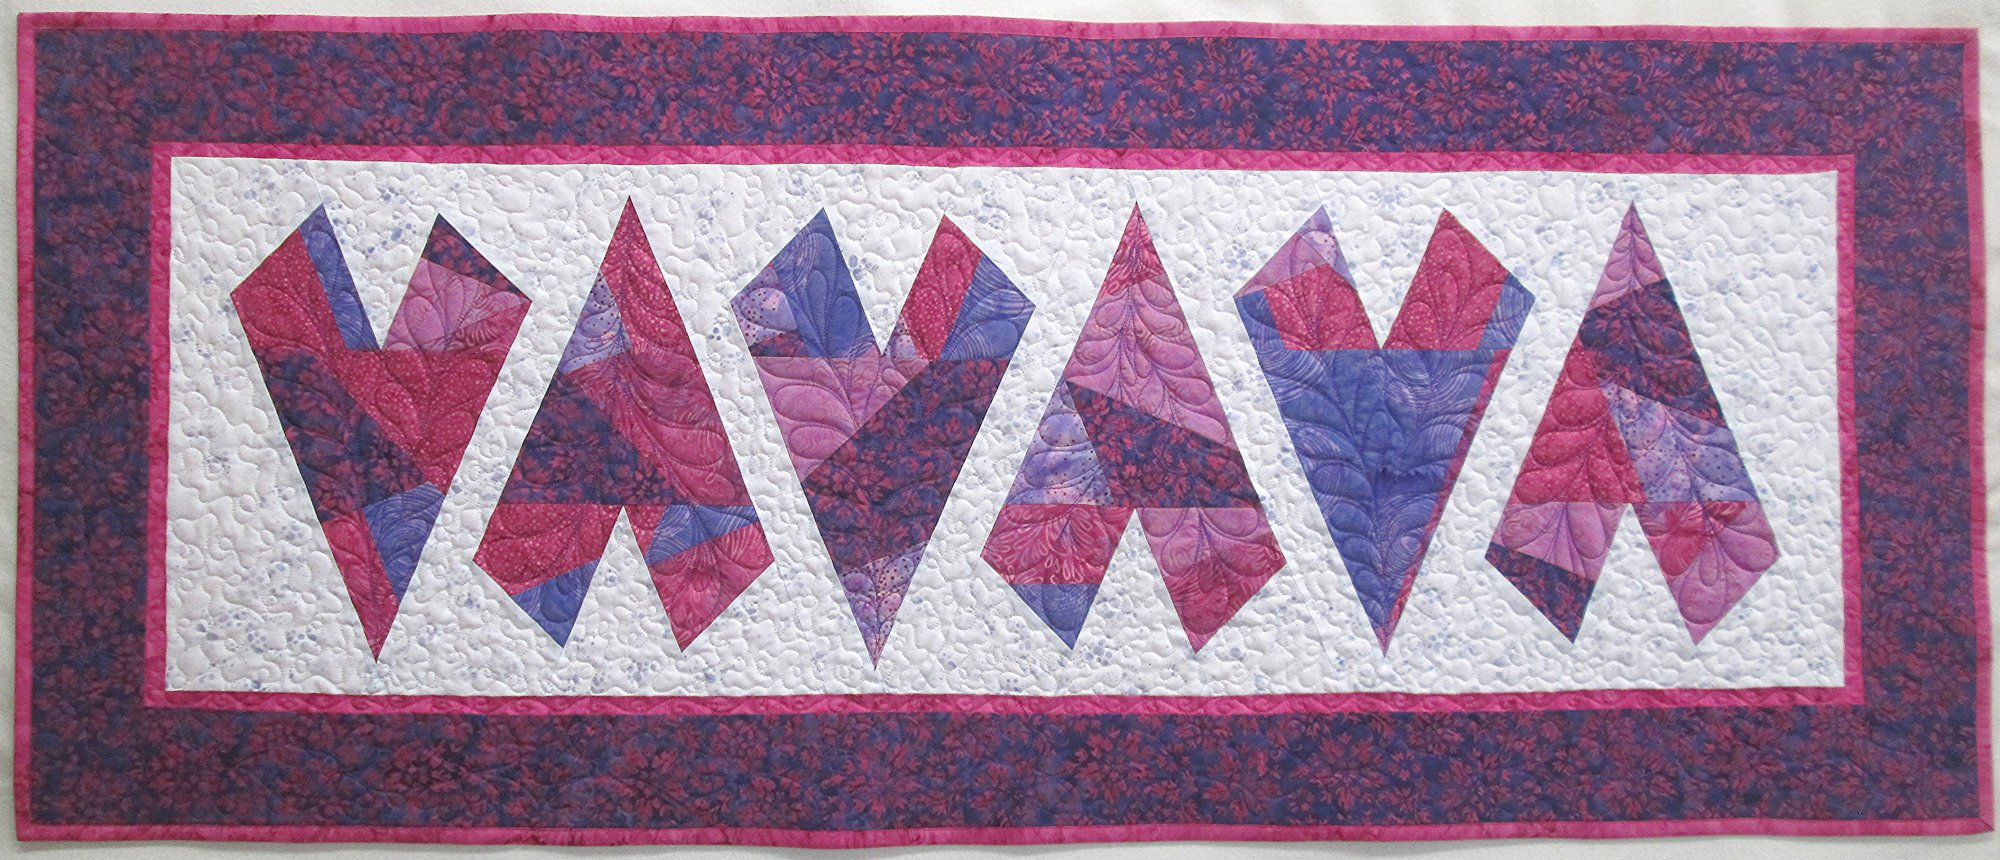 Batik Crazy Hearts Table Runner Kit